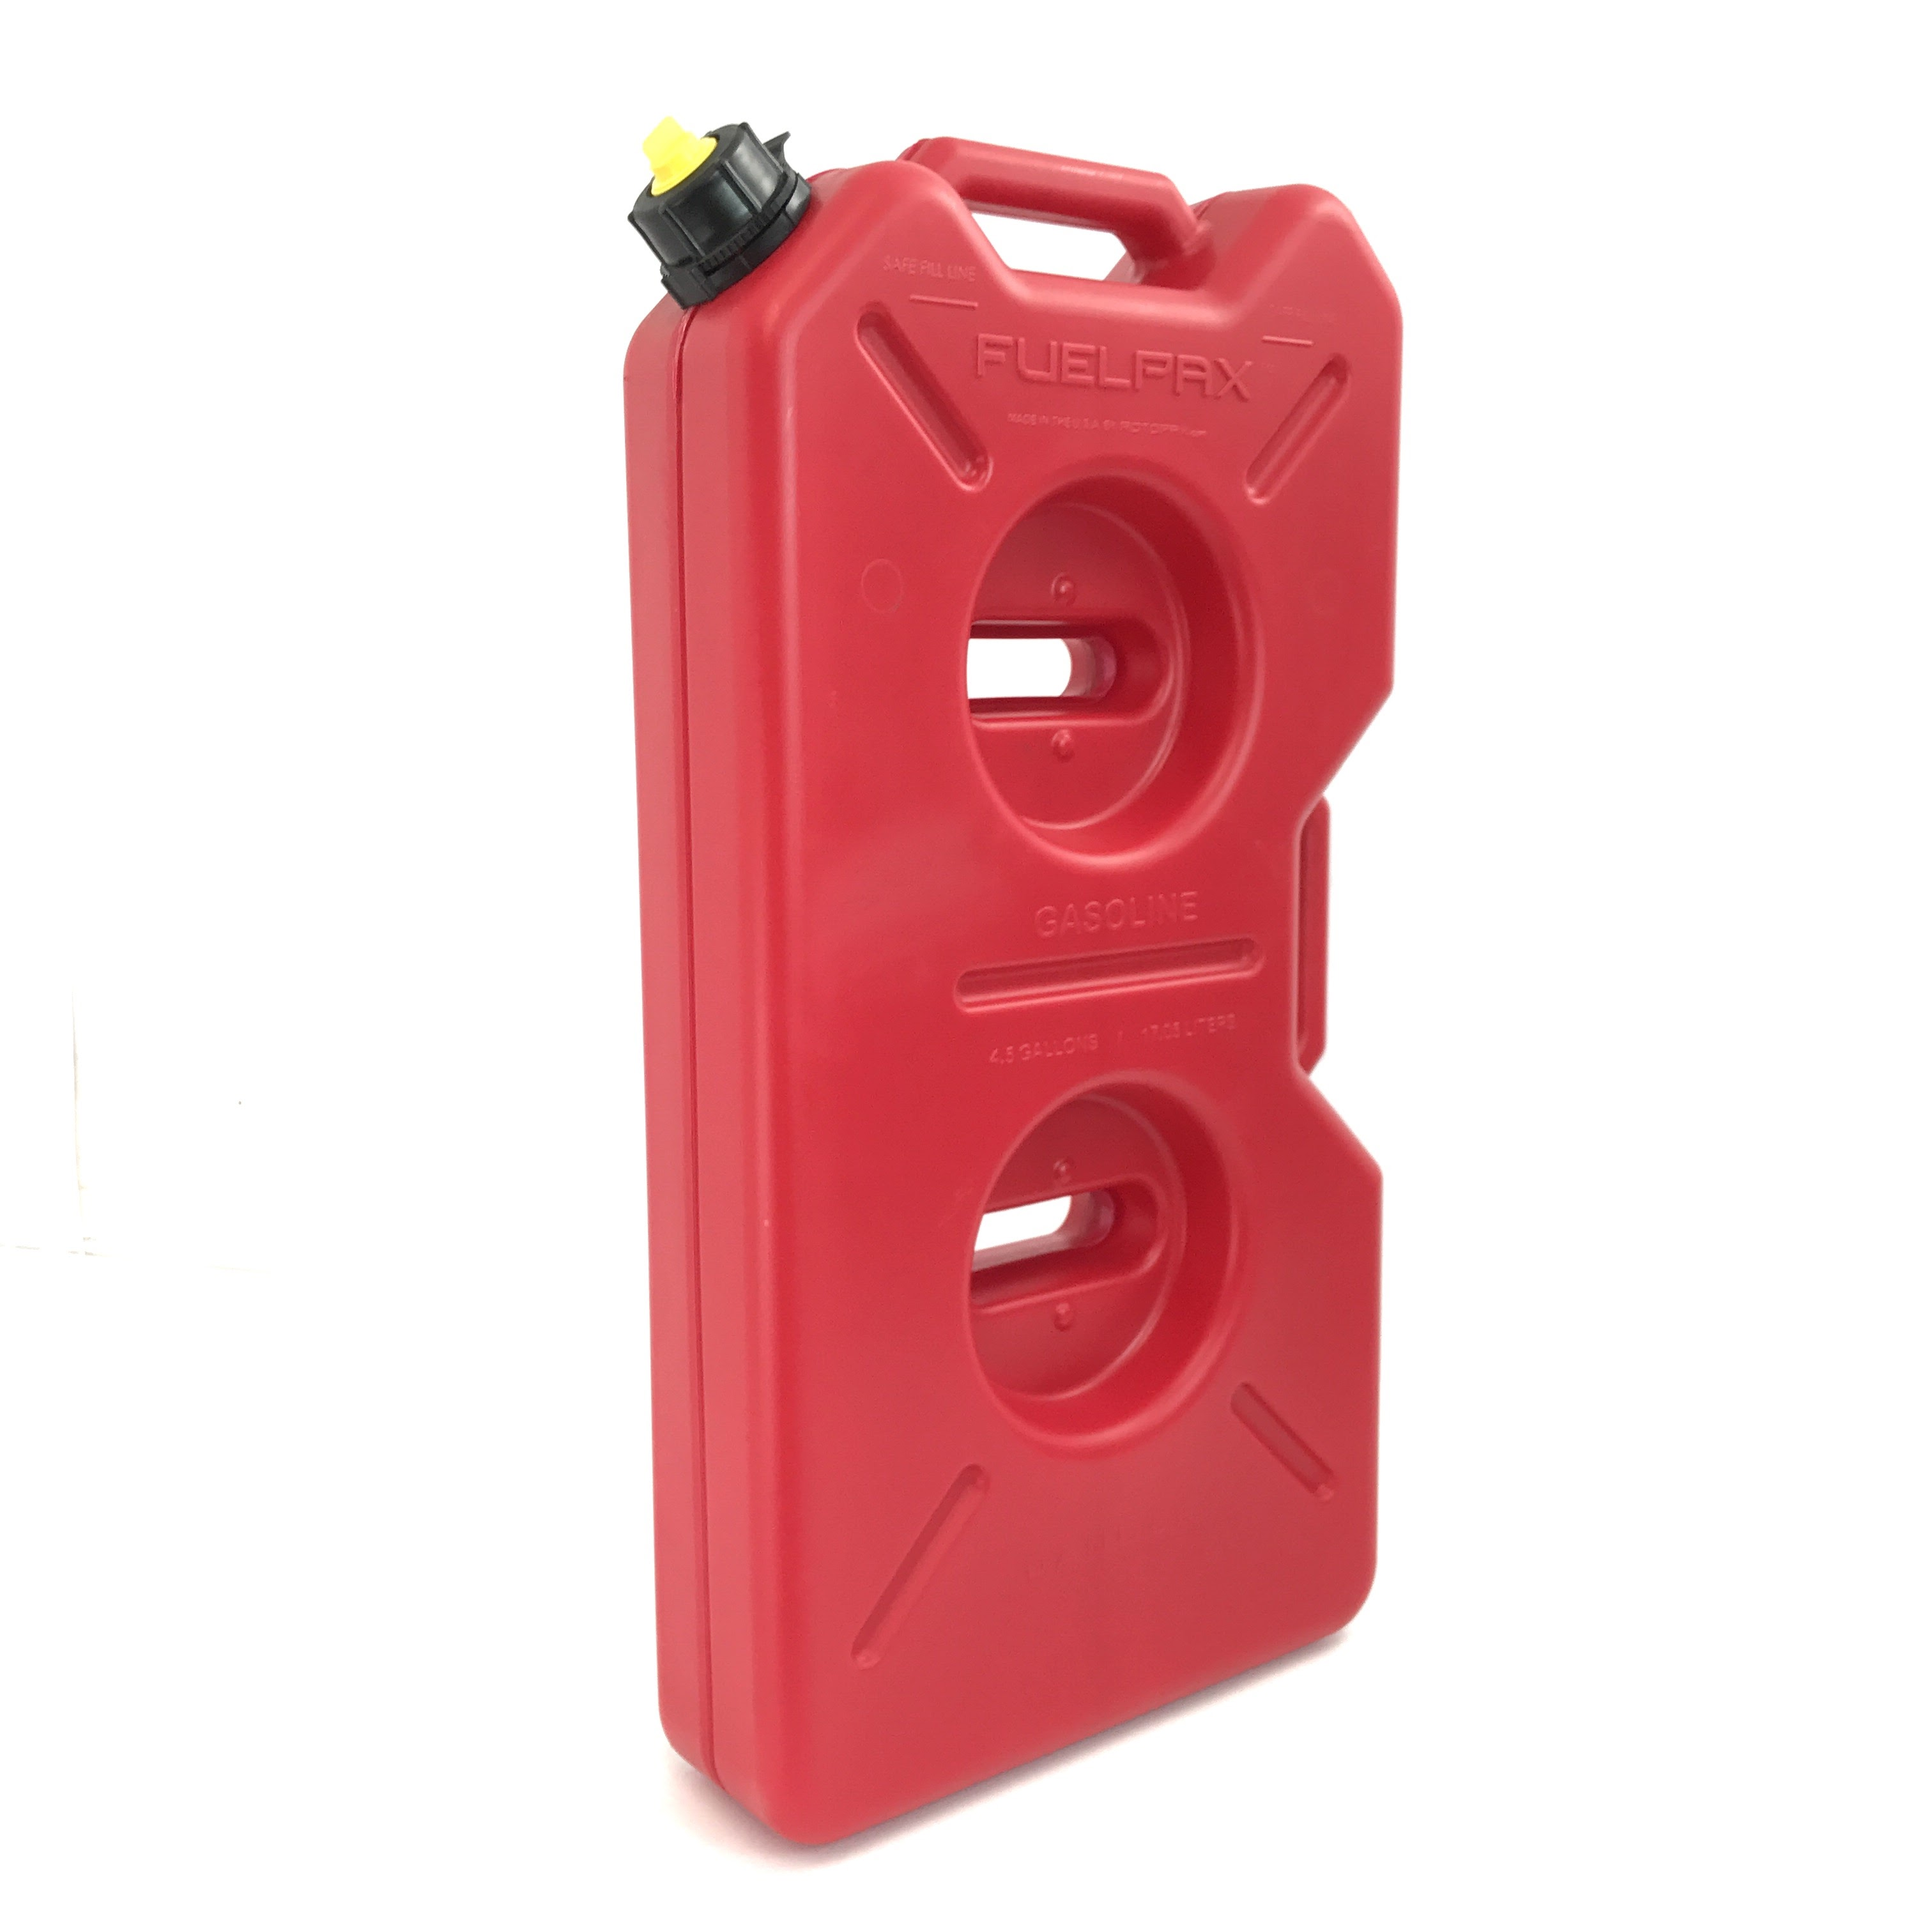 RotopaX is a revolutionary new type of Gas Pack Fuel Cans Gasoline